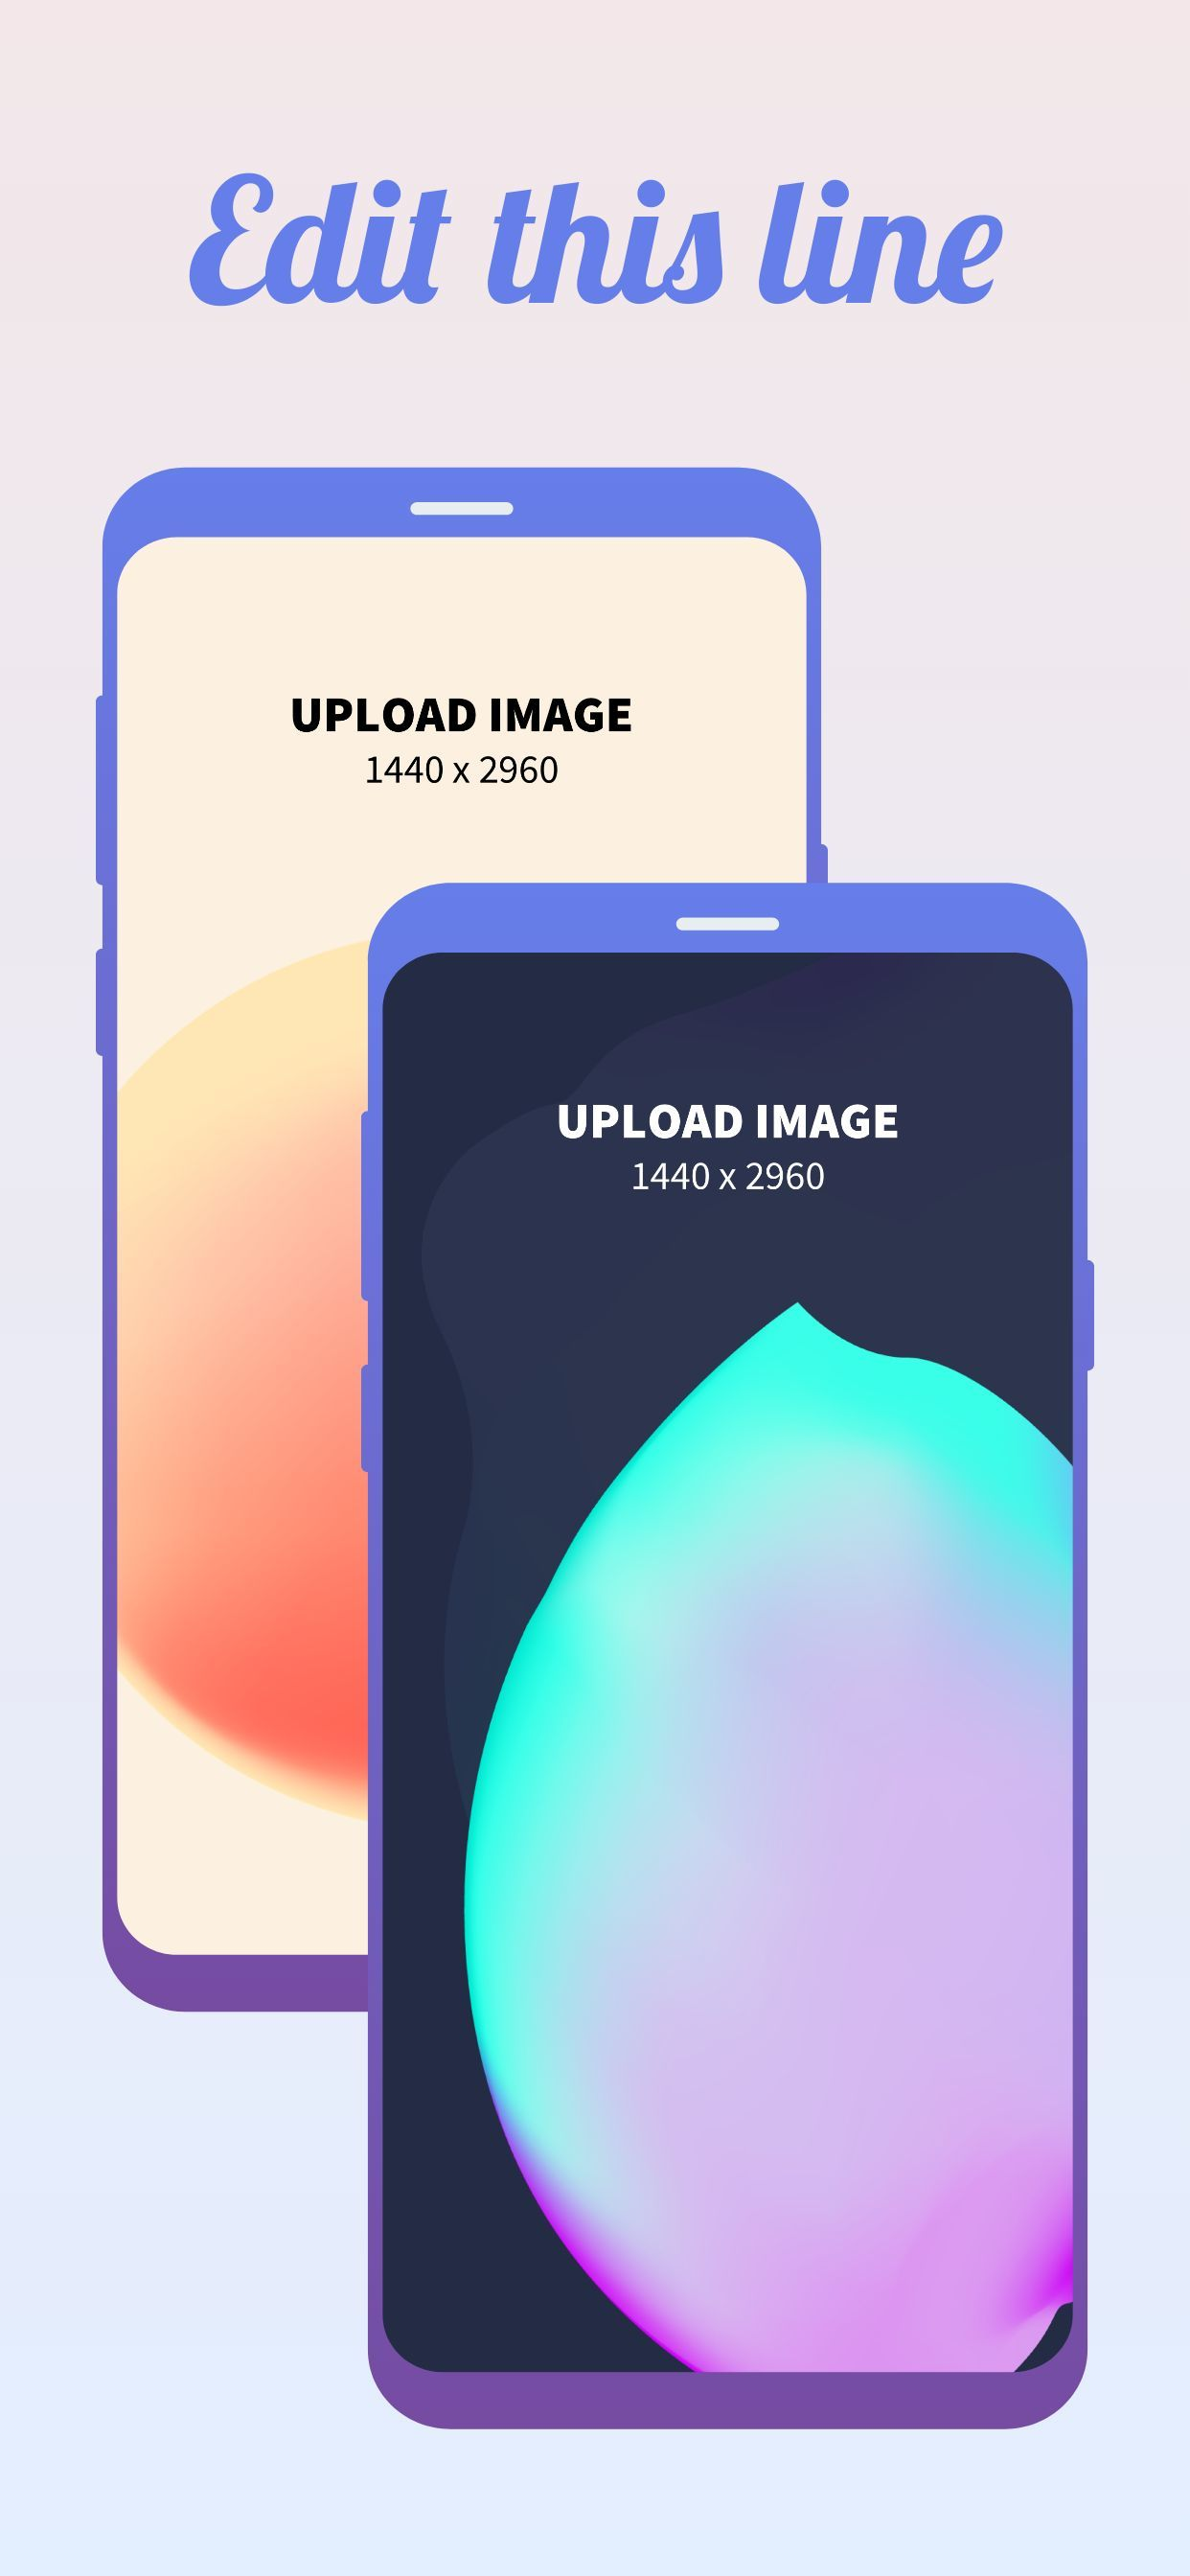 Samsung S9 Screenshot 7 template. Quickly edit fonts, text, colors, and more for free.